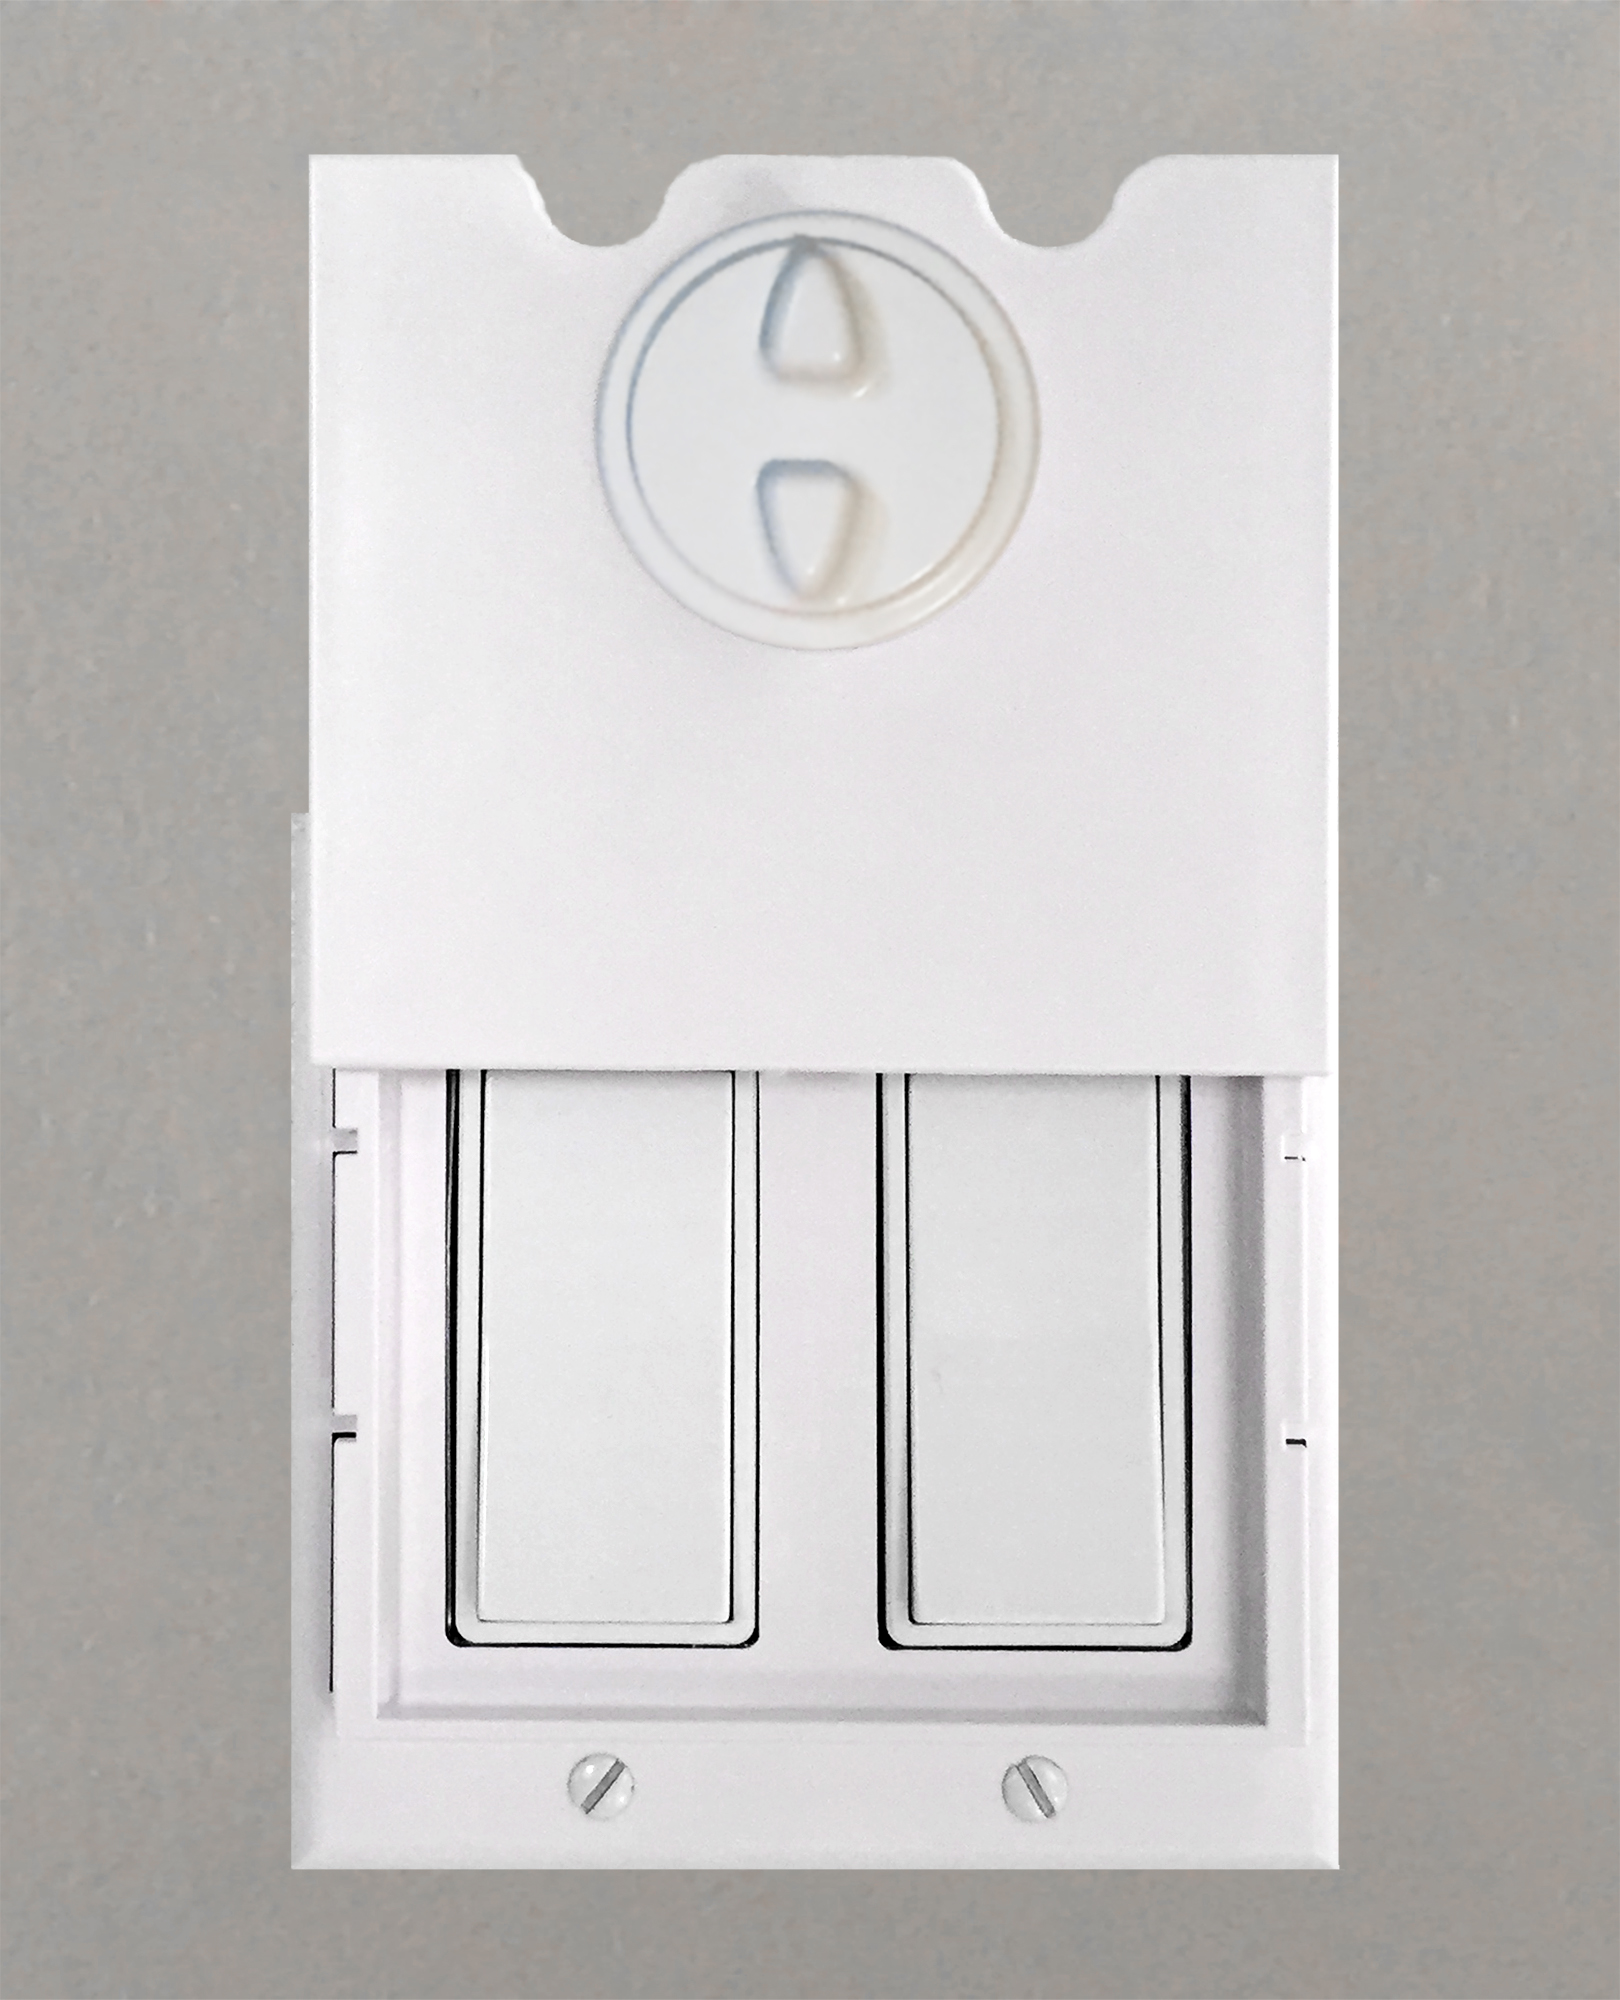 Value Pack: 4 HomeStar Safety Light Switch Guards - White